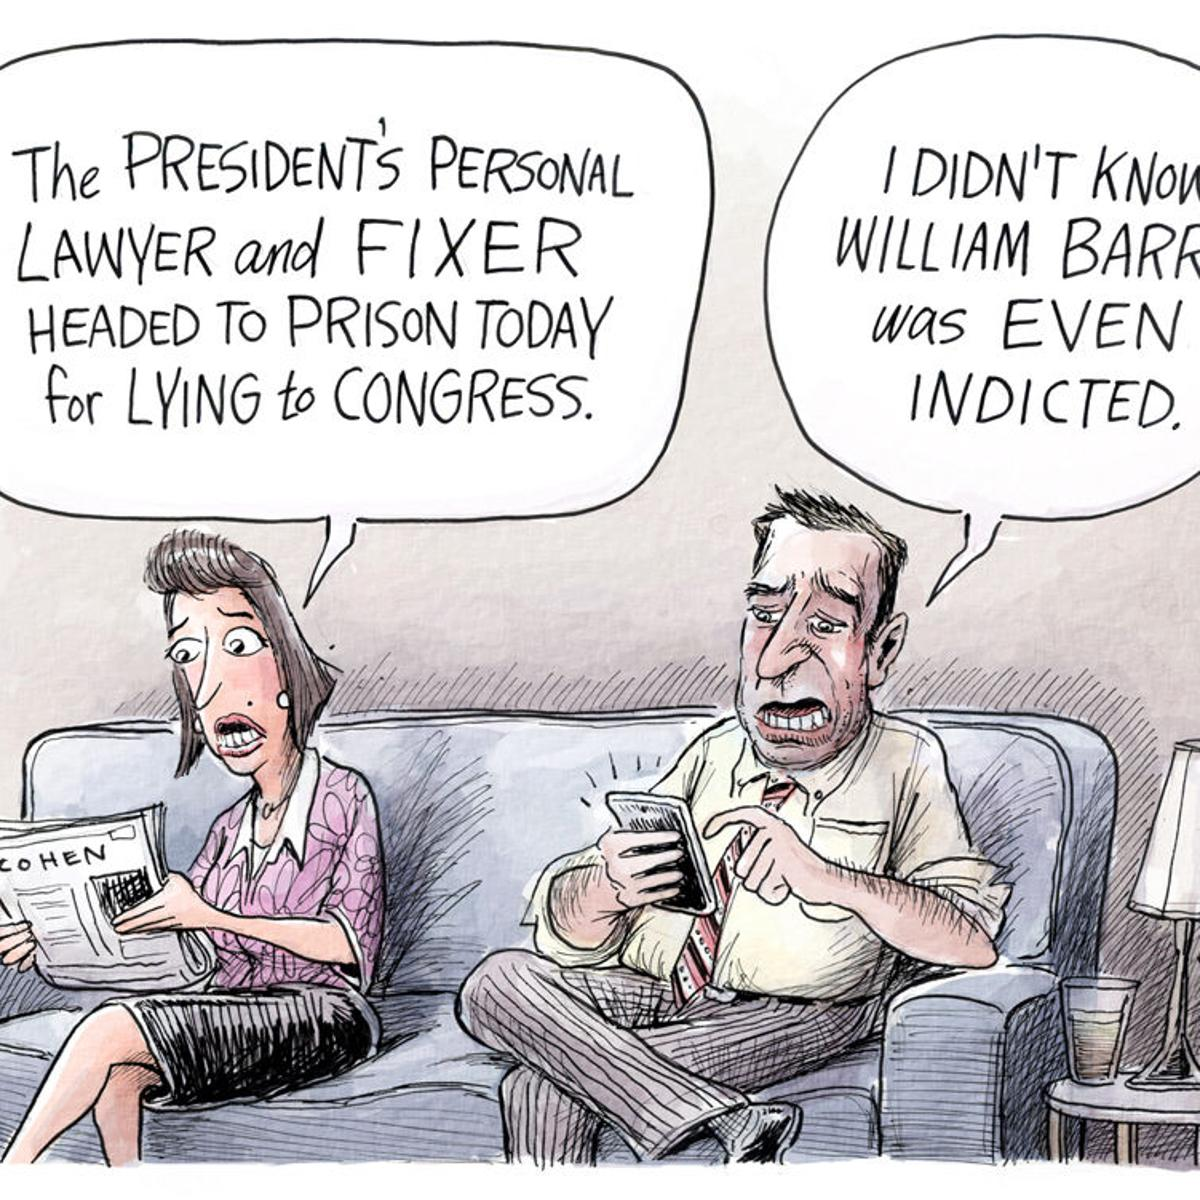 Adam Zyglis: The fixer | Opinion | buffalonews.com